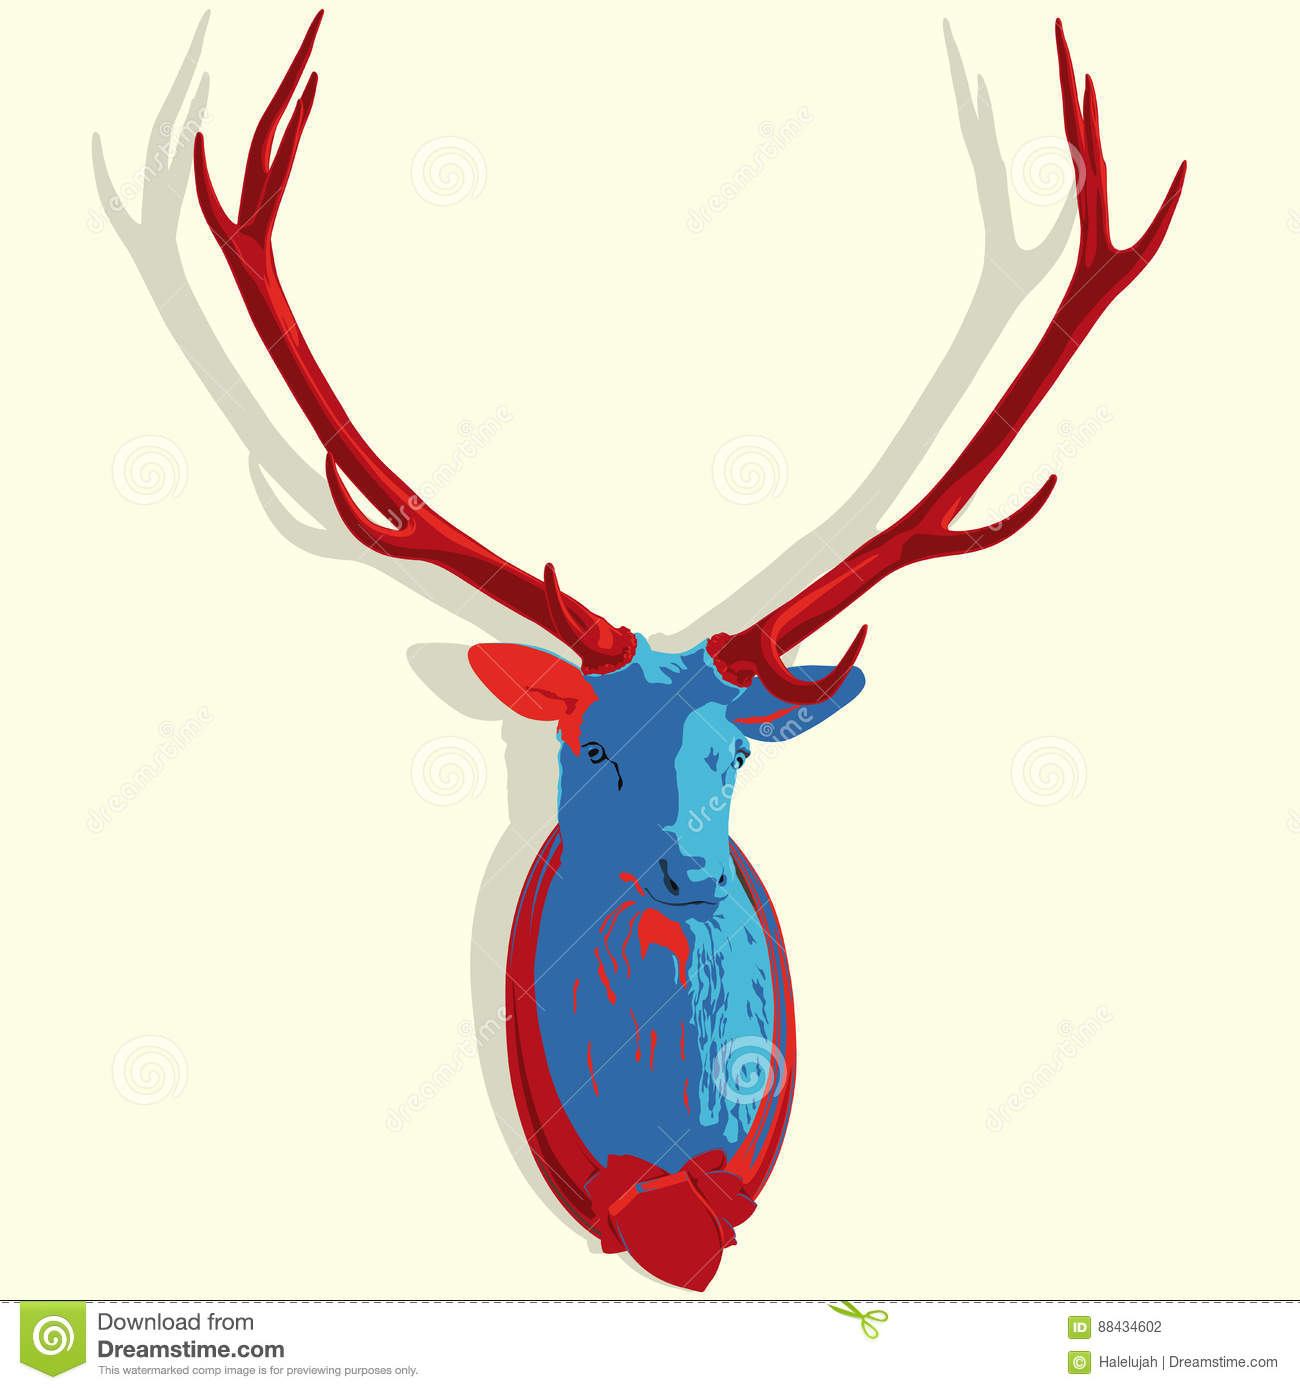 Majestic Red Deer Stag Hunting Trophy Stock Photo - Image of mammal ...